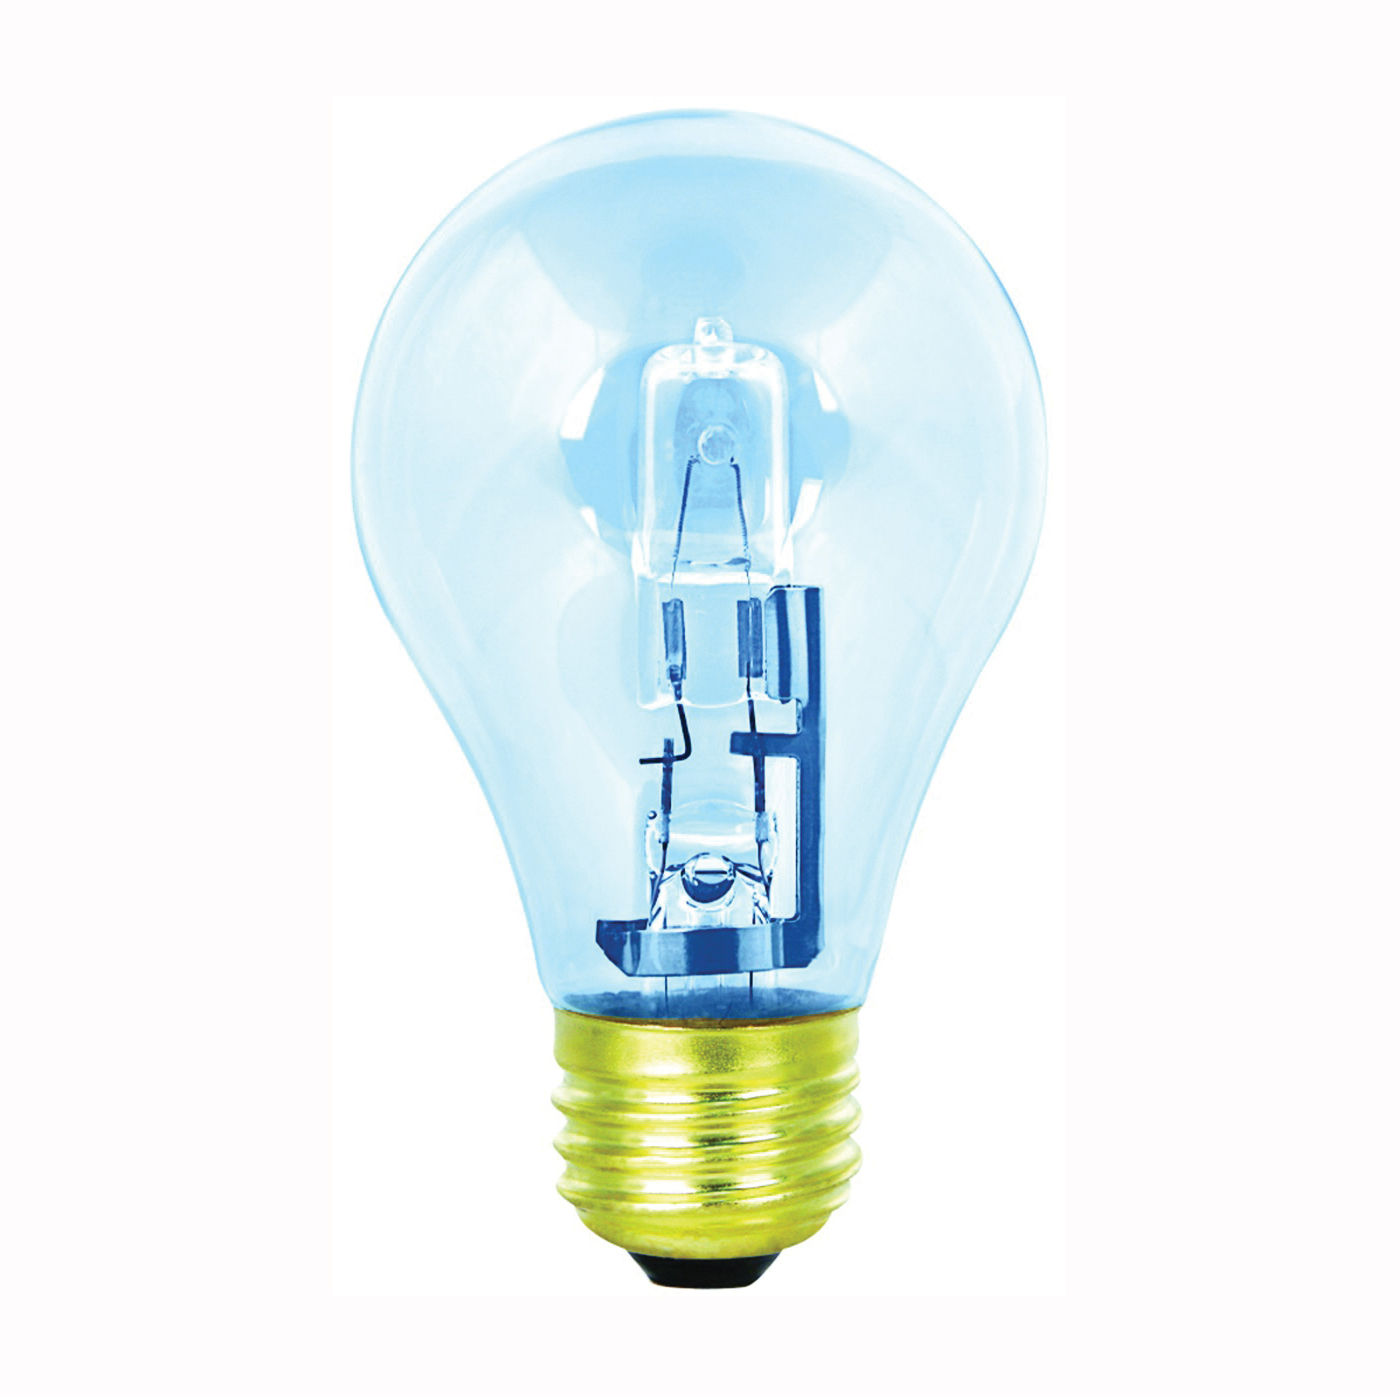 Picture of Feit Electric Q53A/CL/D/2 Halogen Lamp, 53 W, Medium E26 Lamp Base, A19 Lamp, Soft White Light, 790 Lumens